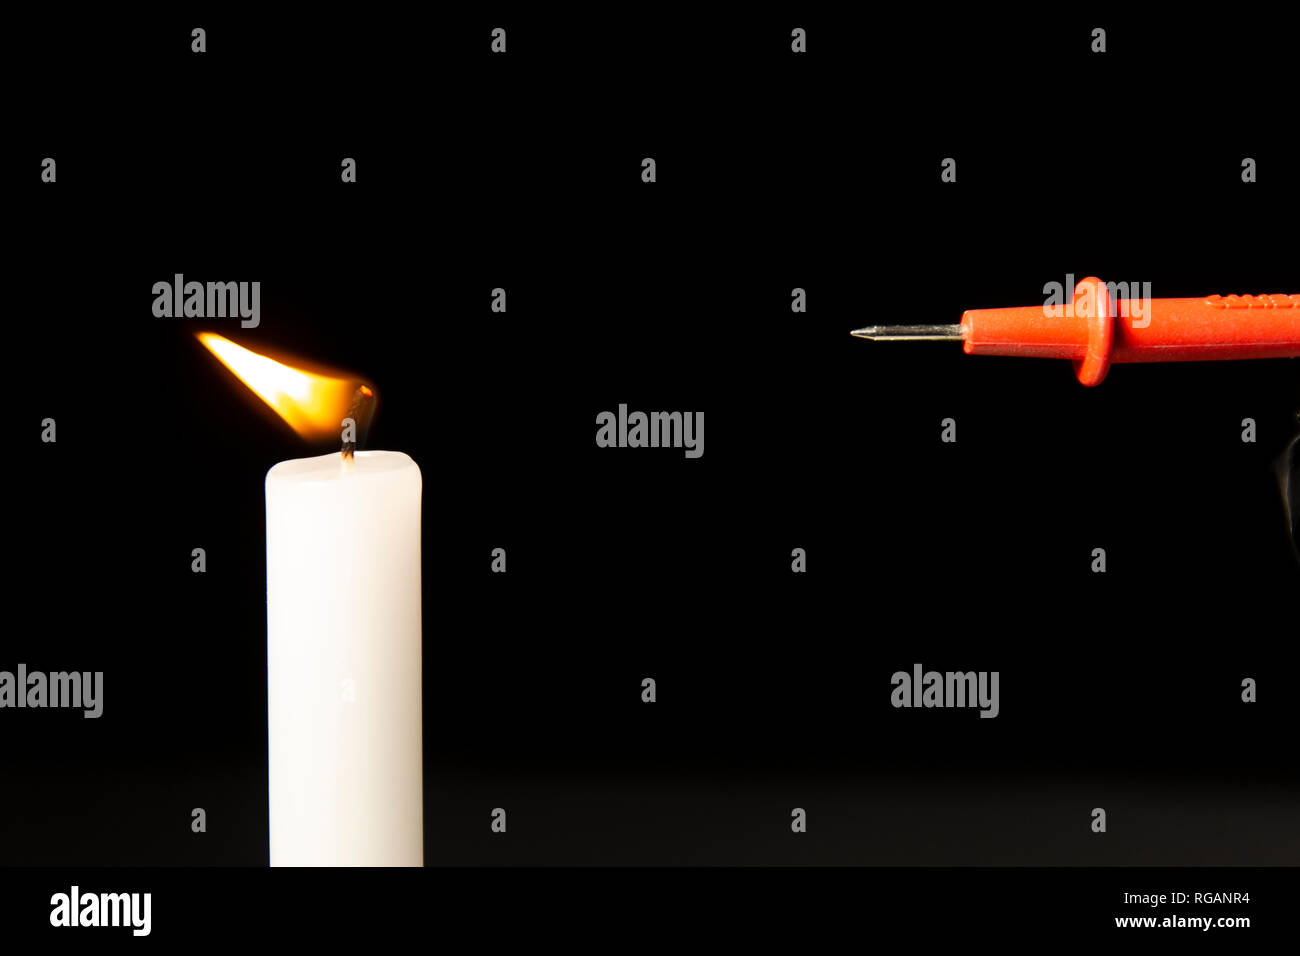 A static electricity charged metal tip bending a candle fire. - Stock Image